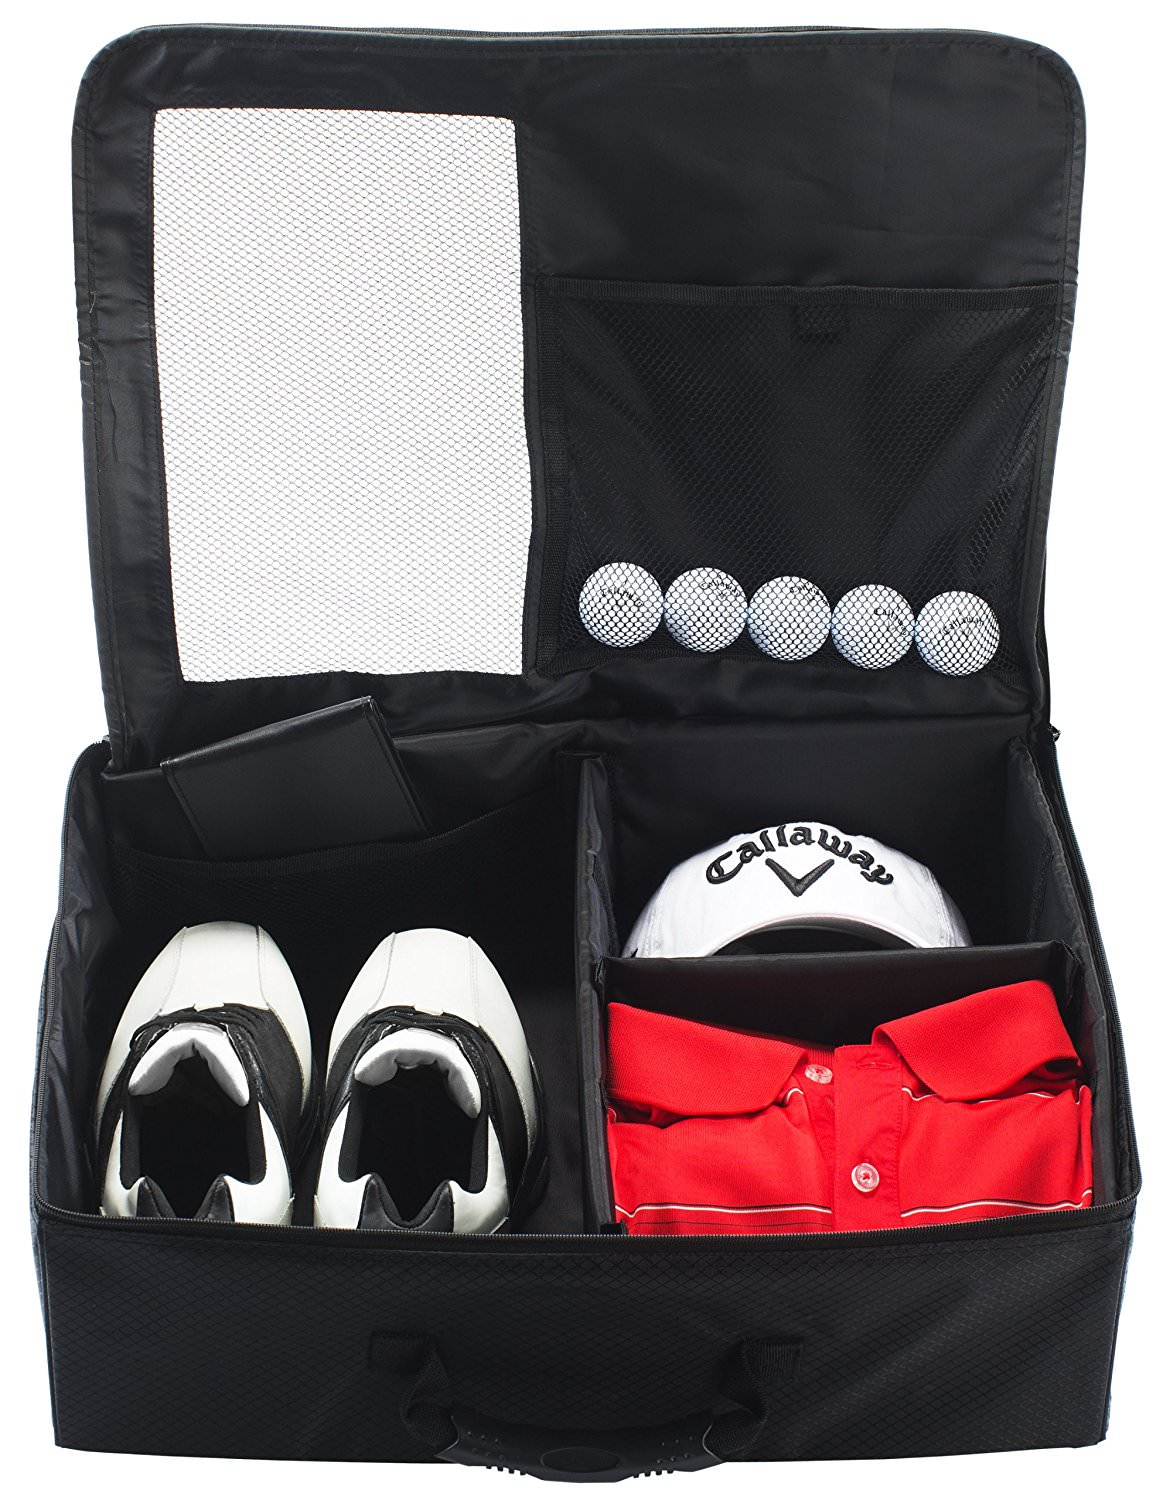 Opened Callaway Golf Trunk Locker with a red shirt, pair of gold shoes and 5 golf balls